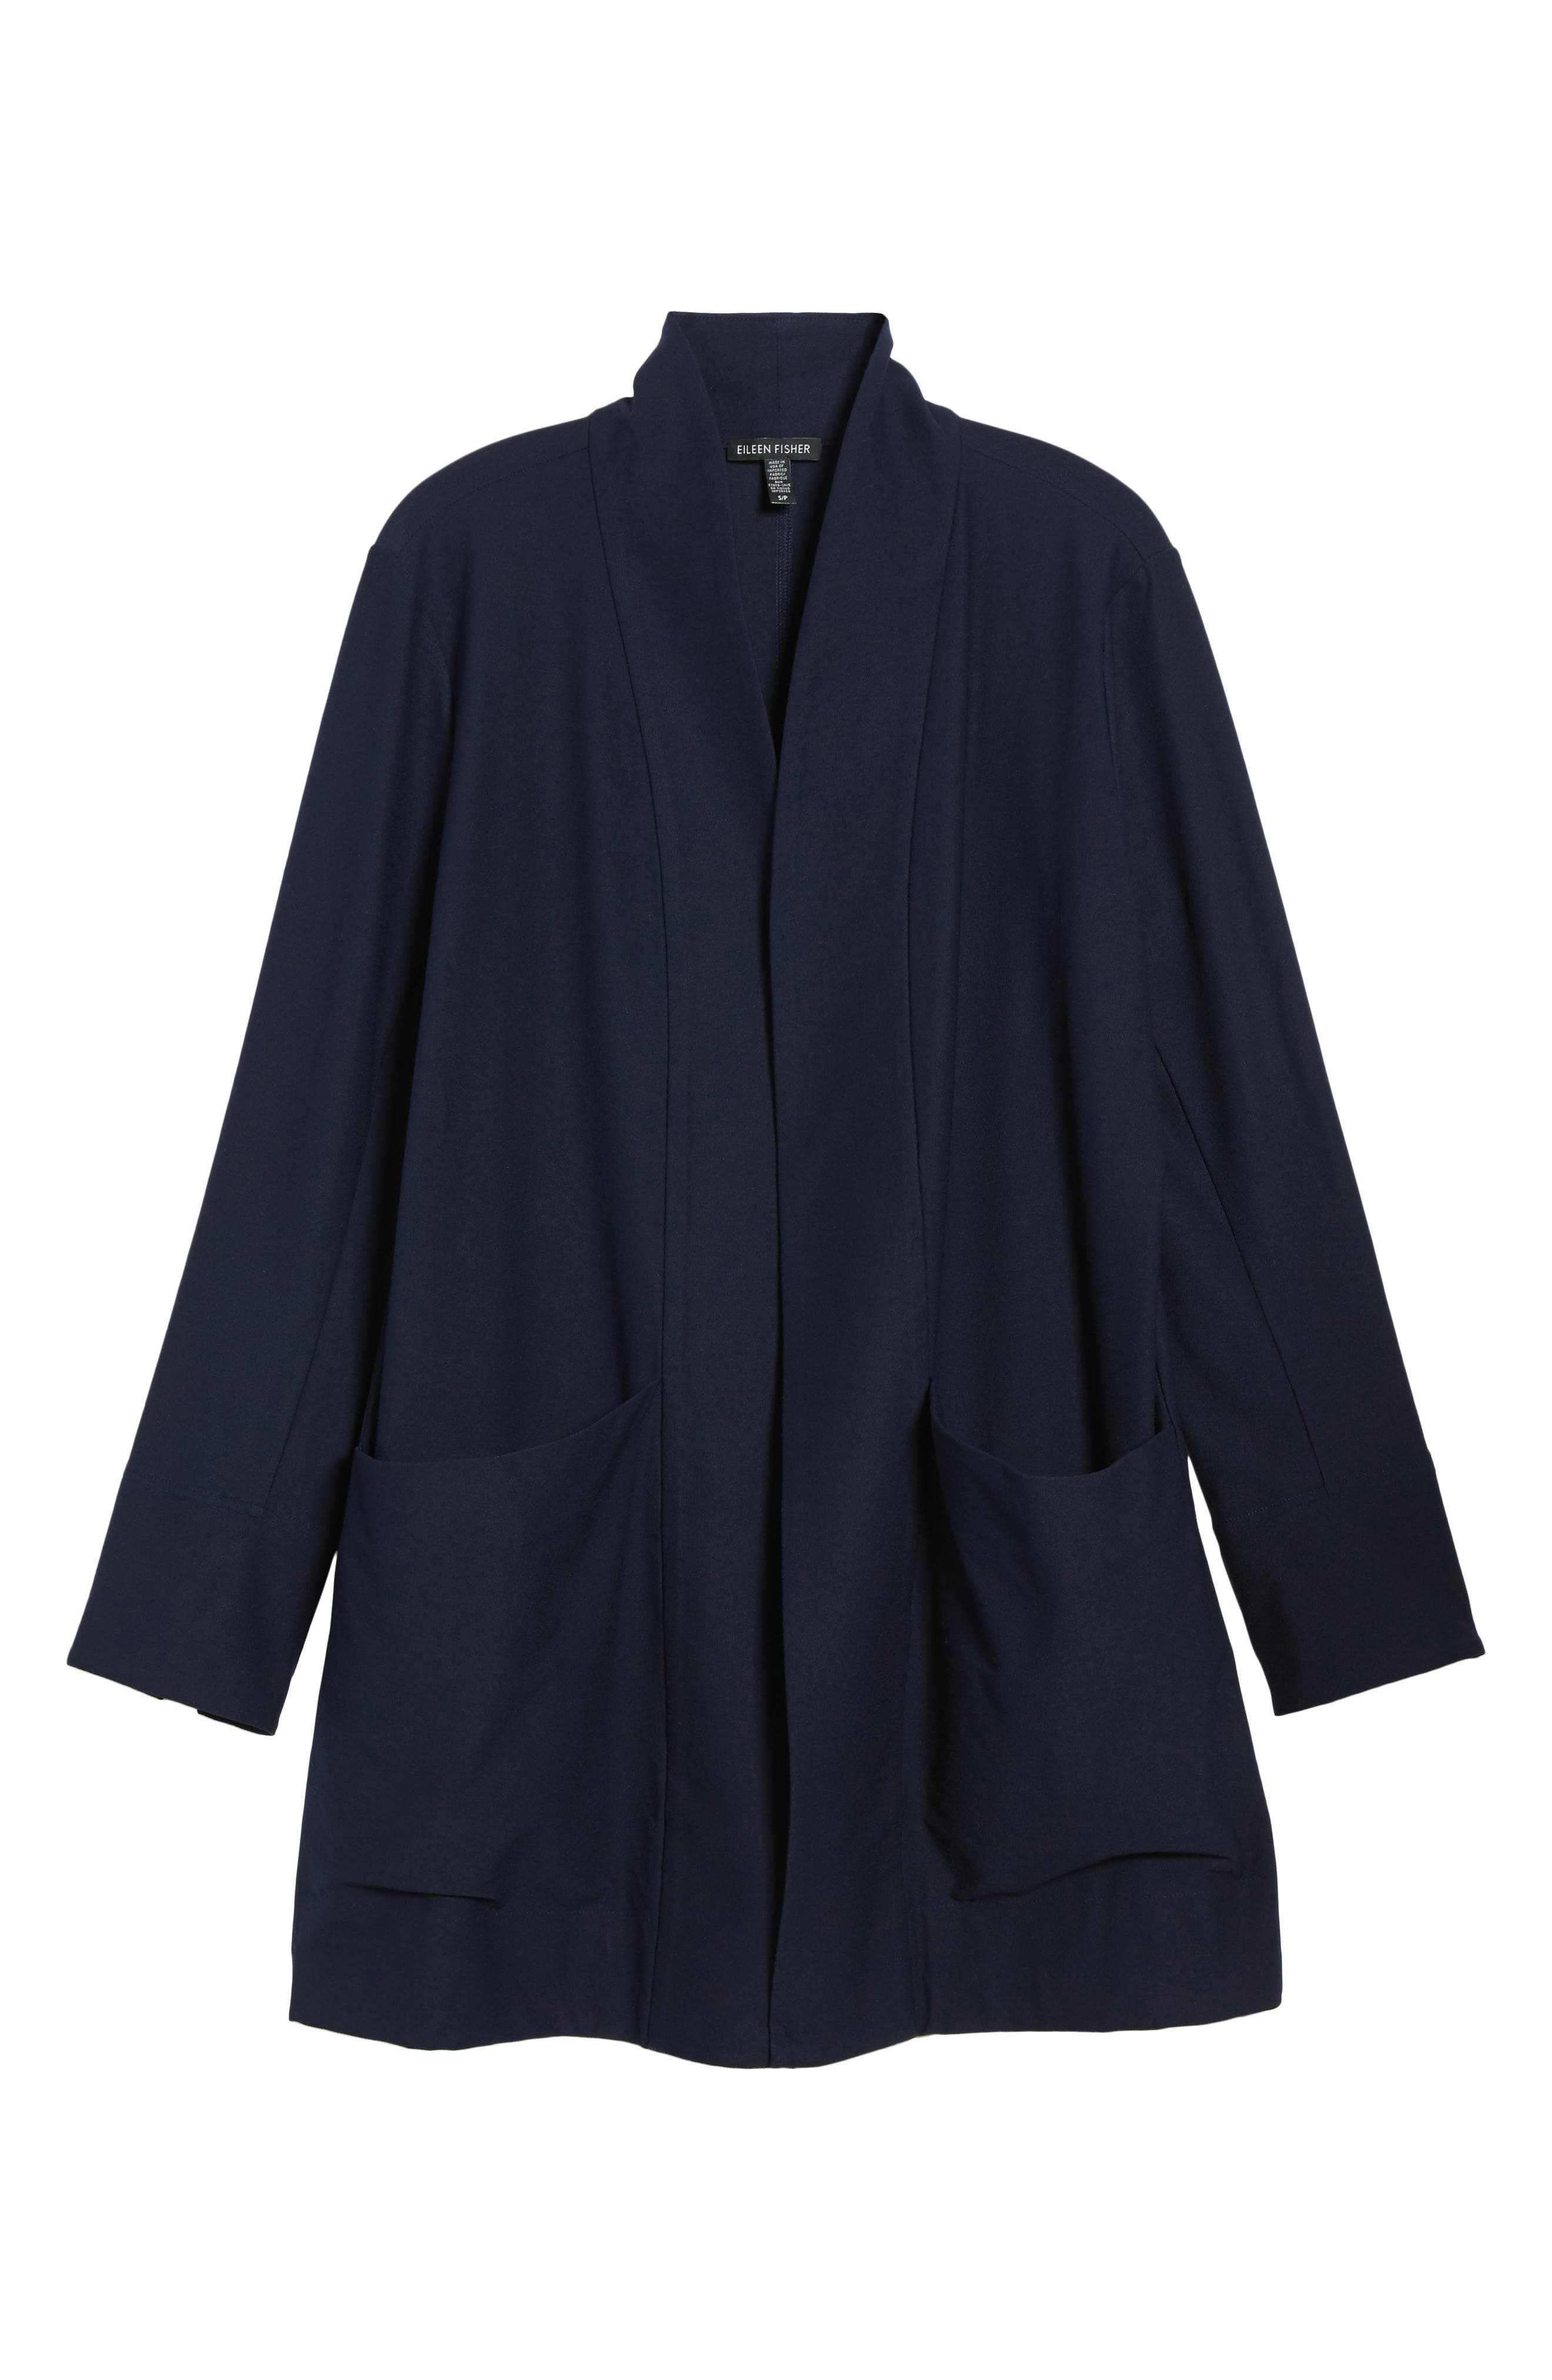 Kimono Jacket,                             Alternate thumbnail 19, color,